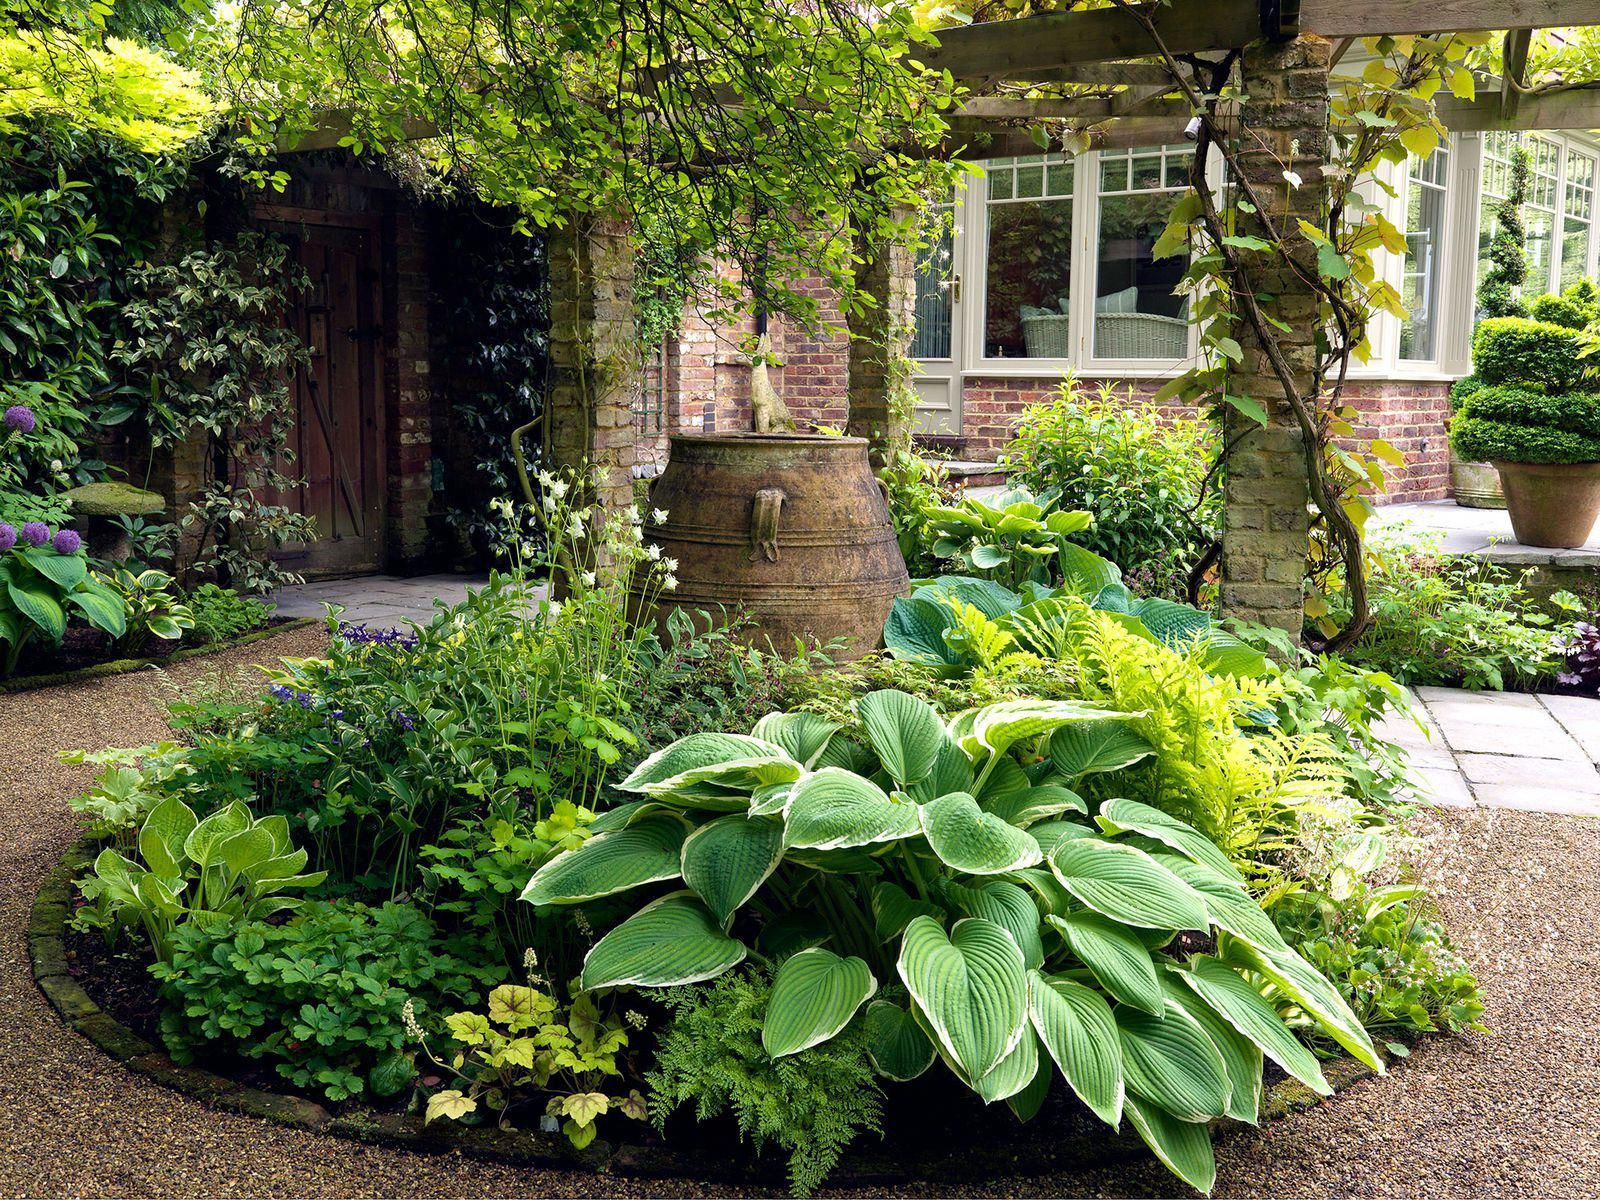 8 Front Garden Design Tips To Make Your Home More Welcoming And Inviting Gardenpath Front Garden Design Cottage Garden Garden Design